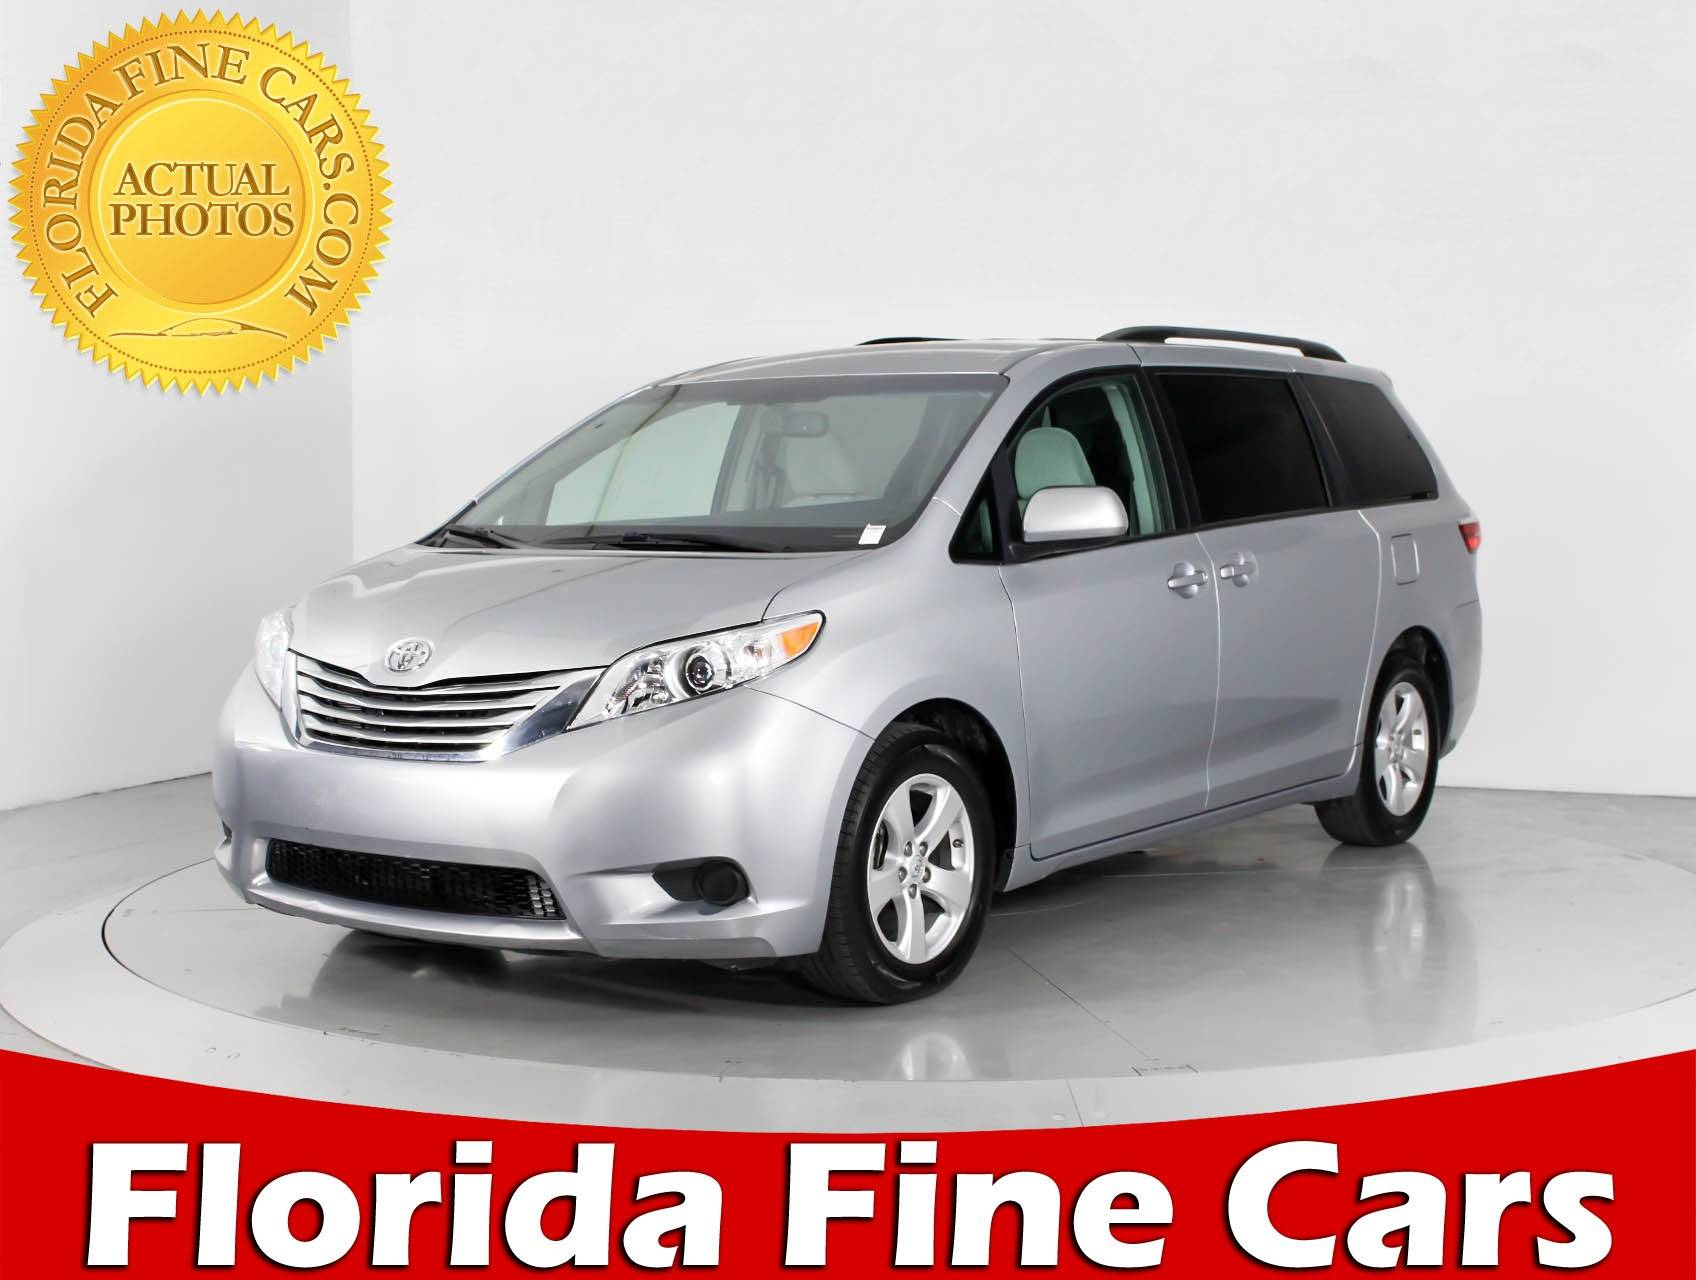 Used 2016 TOYOTA SIENNA Le Minivan for sale in WEST PALM FL